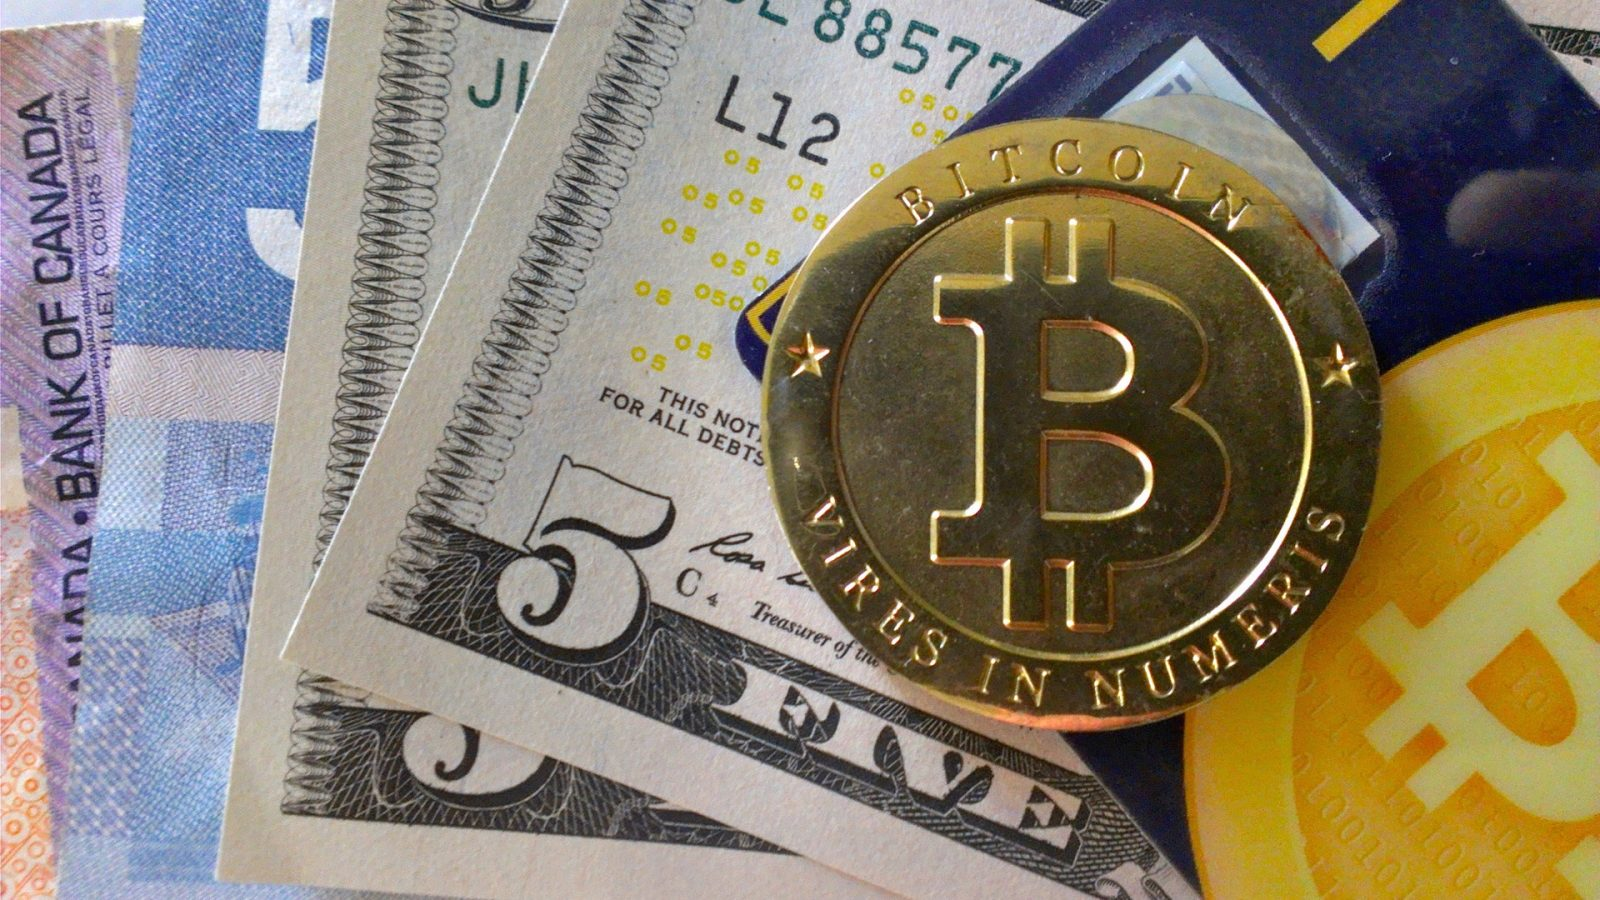 Are bitcoins in danger of a miner takeover? Photo courtesy of Bit-Square